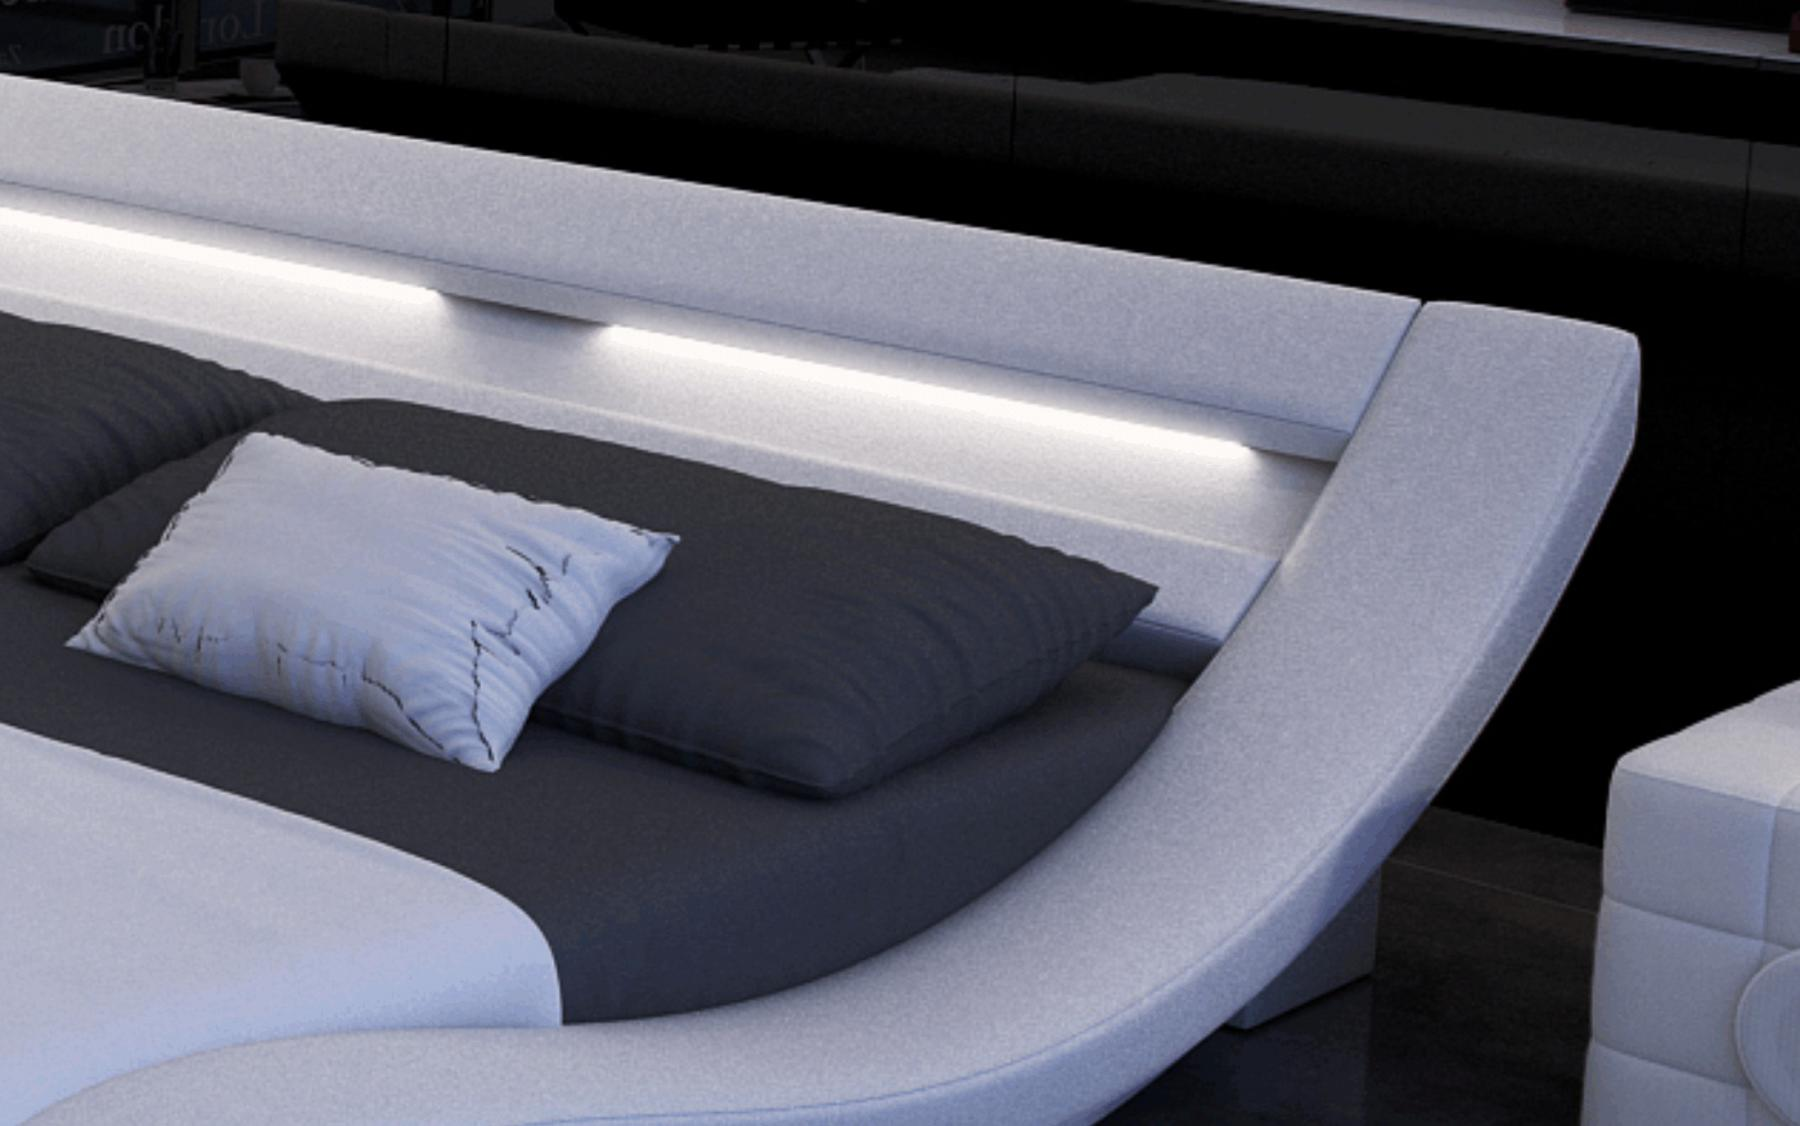 designerbett massa mit led beleuchtung kaufen bei pmr. Black Bedroom Furniture Sets. Home Design Ideas